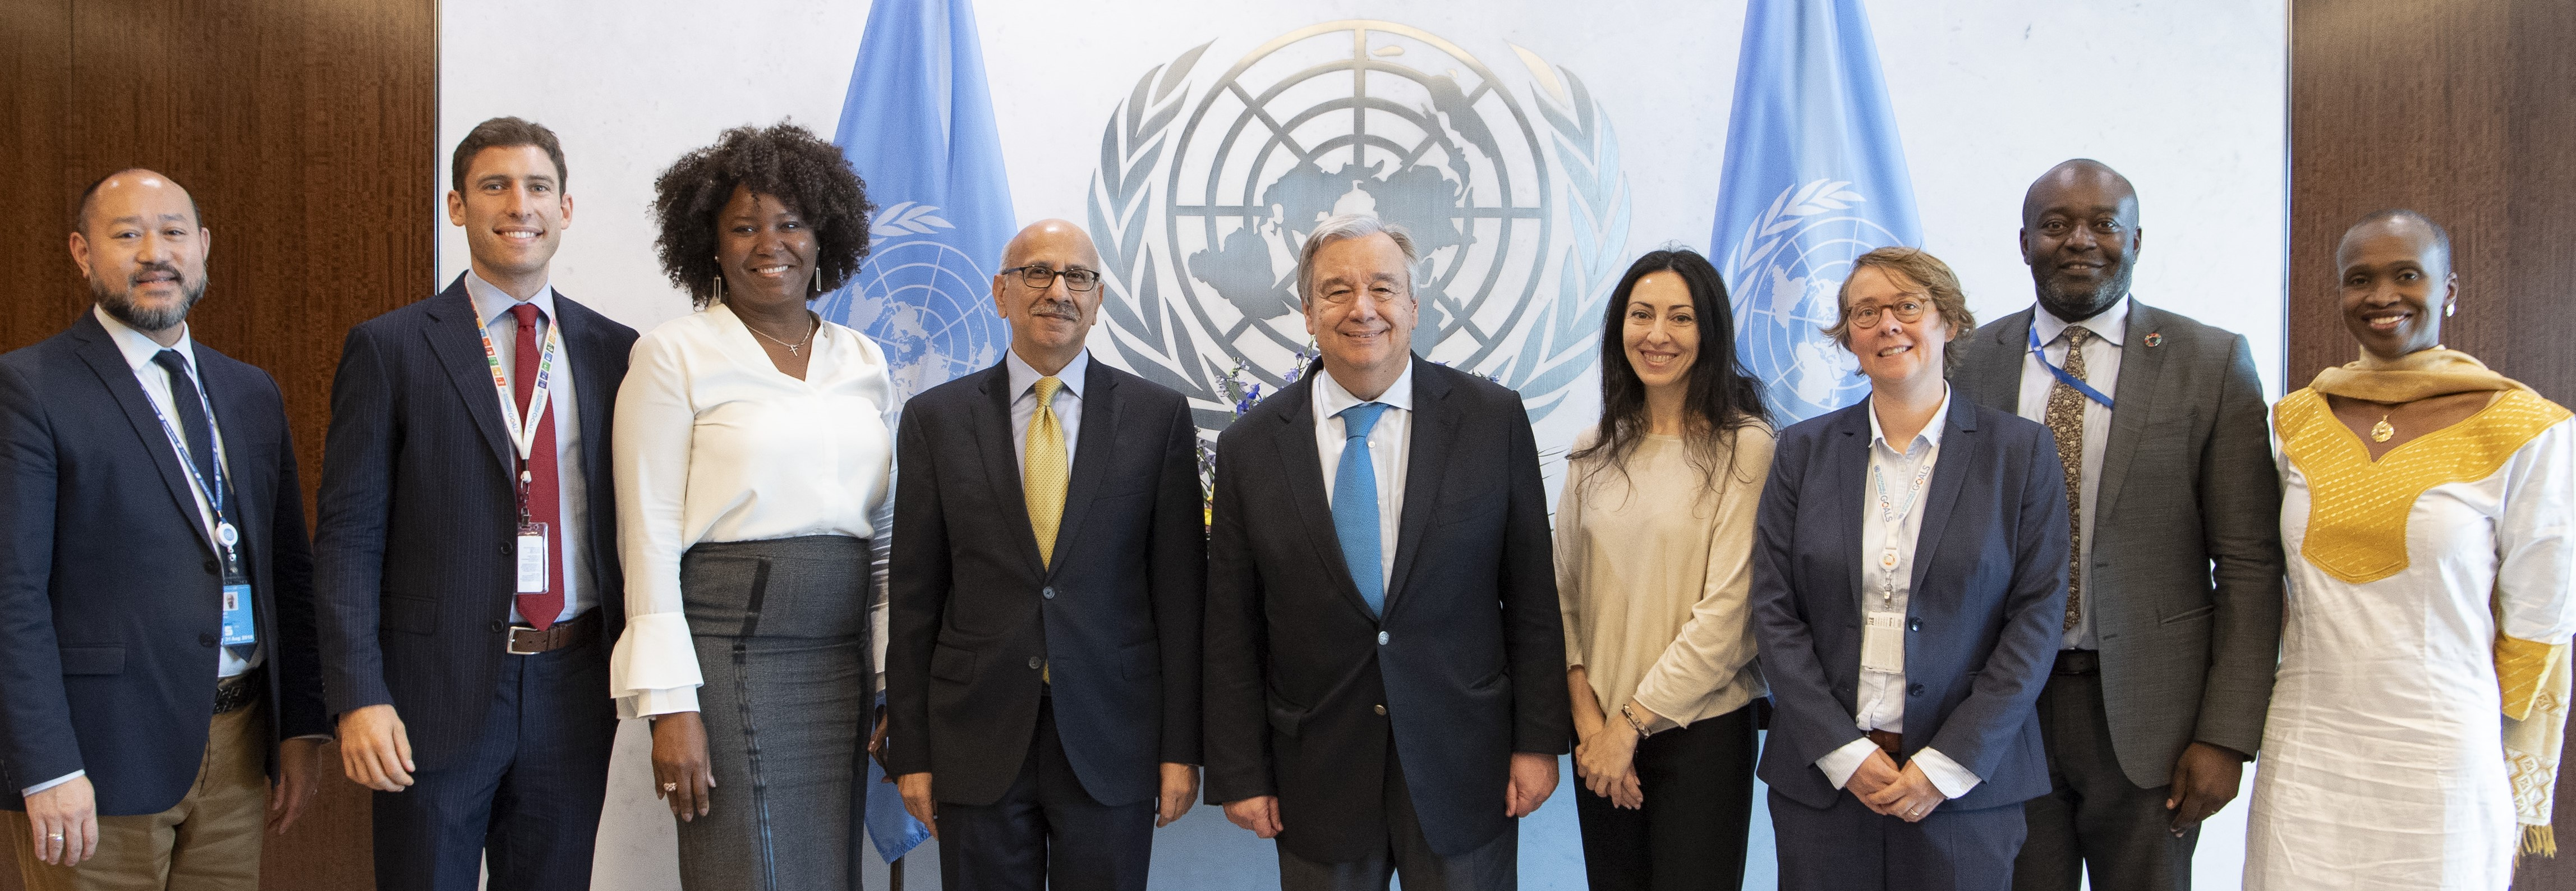 UN Photo 765481: Secretary-General Guterres with staff celebrating the adoption of the General Assembly resolution on the repositioning of the United Nations Development System